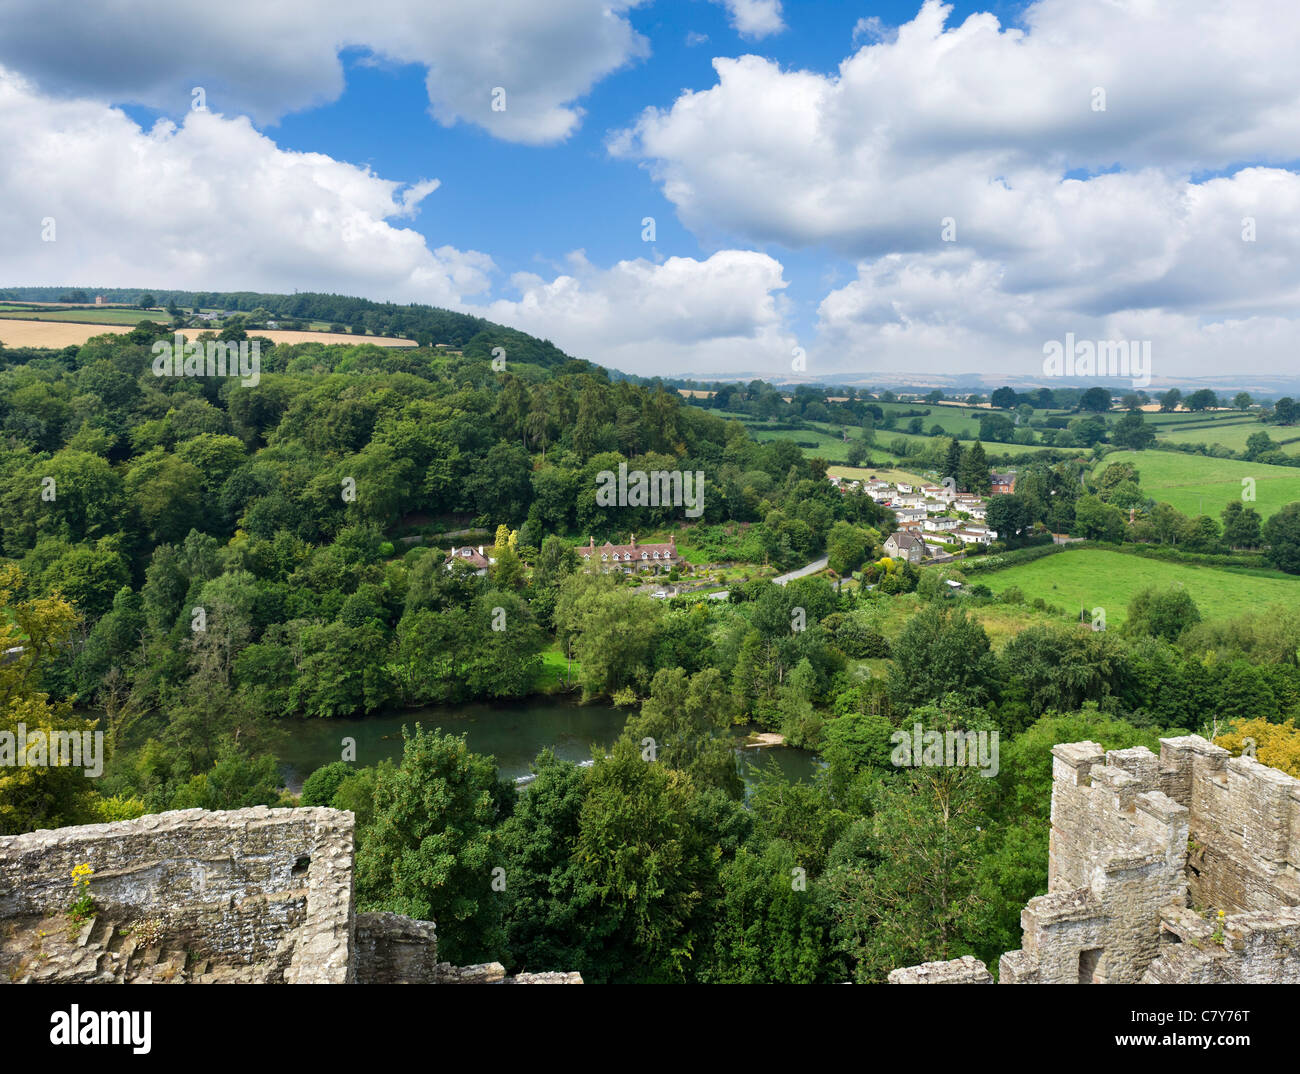 View out over the Shropshire countryside from the walls of Ludlow Castle, Ludlow, Shropshire, England, UK - Stock Image